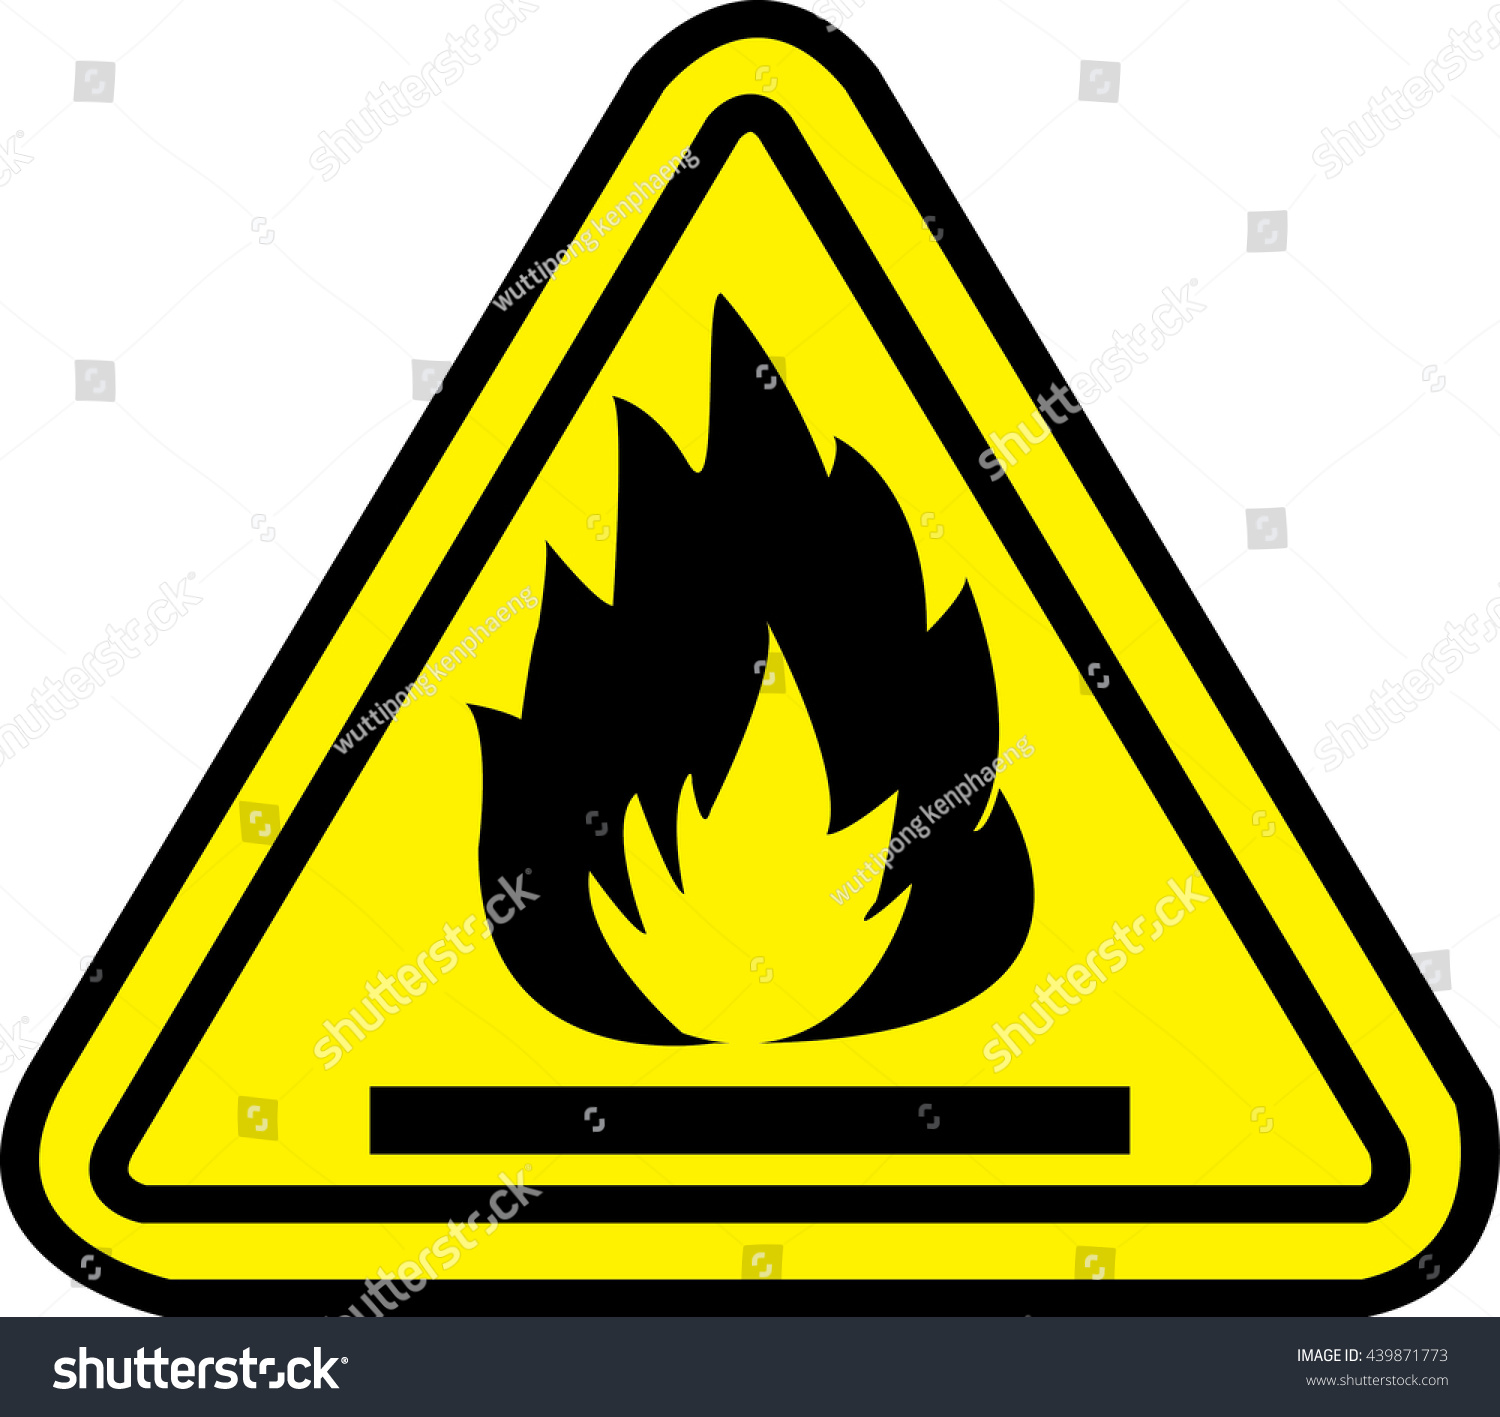 Highly flammable yellow warning sign stock vector 439871773 highly flammable yellow warning sign buycottarizona